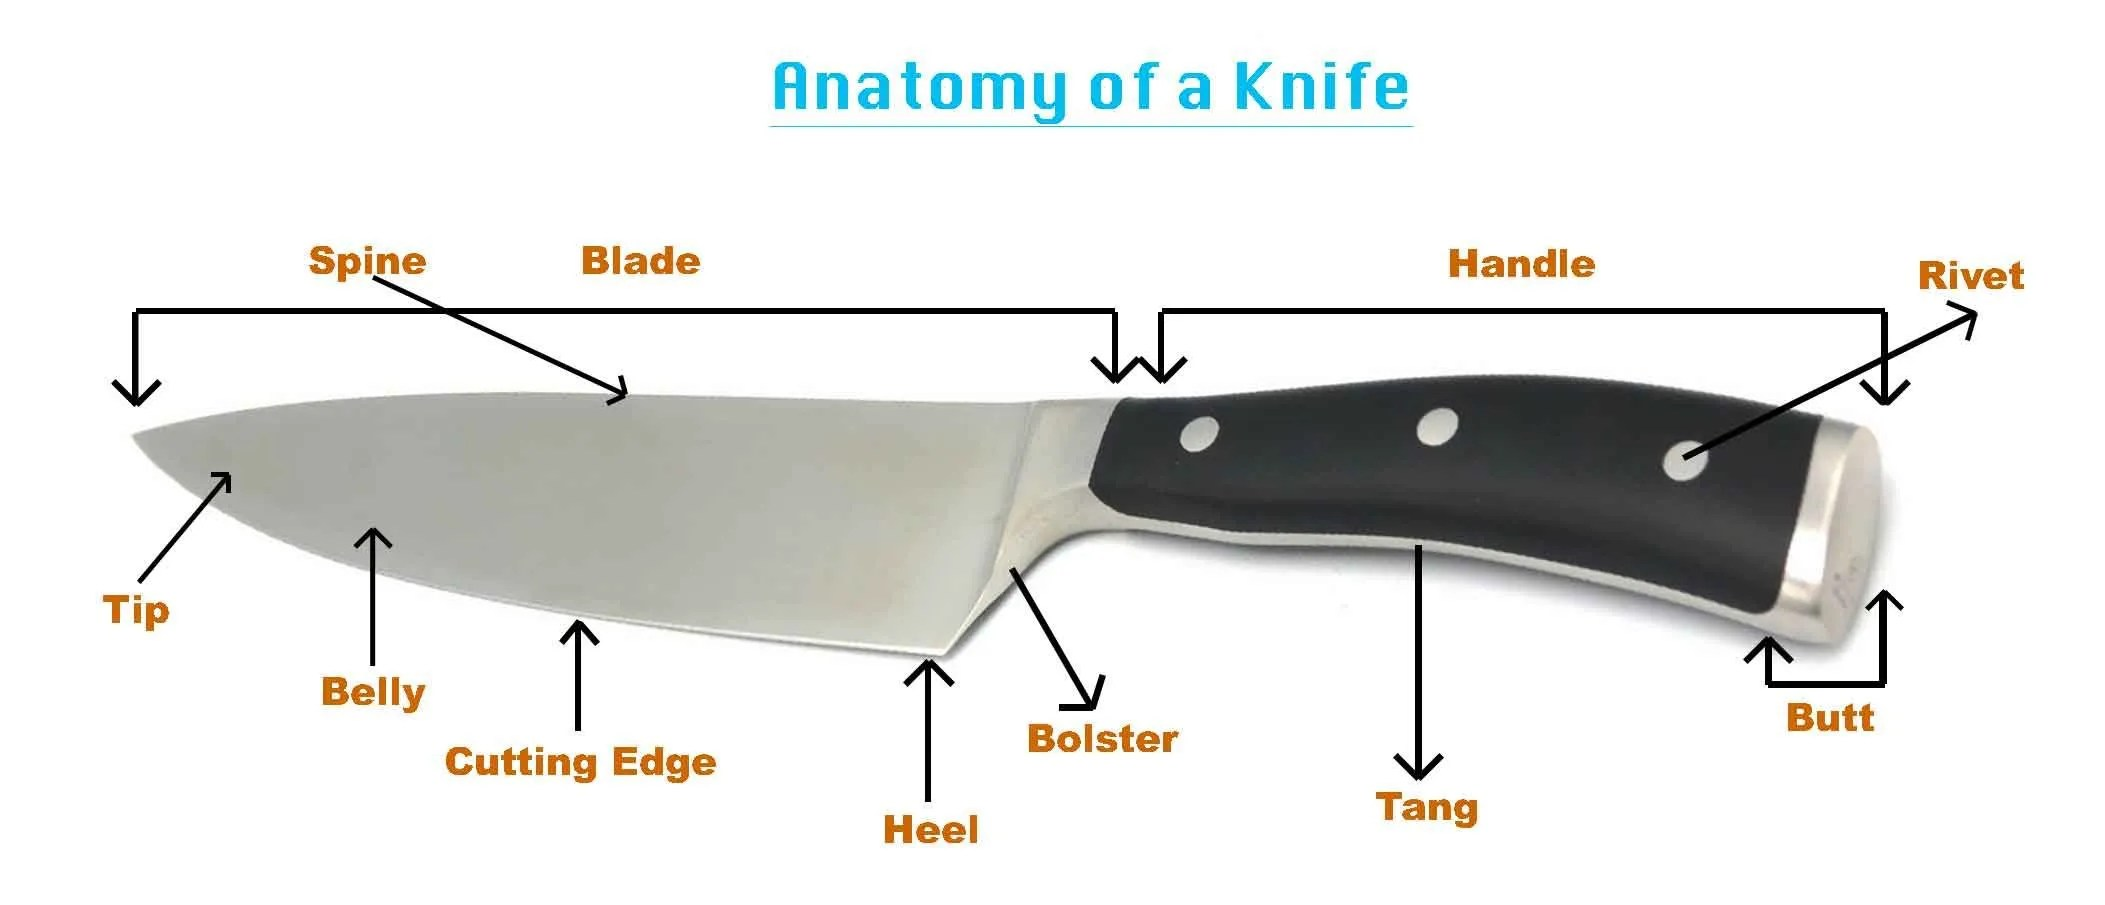 Parts Of A Knife Diagram